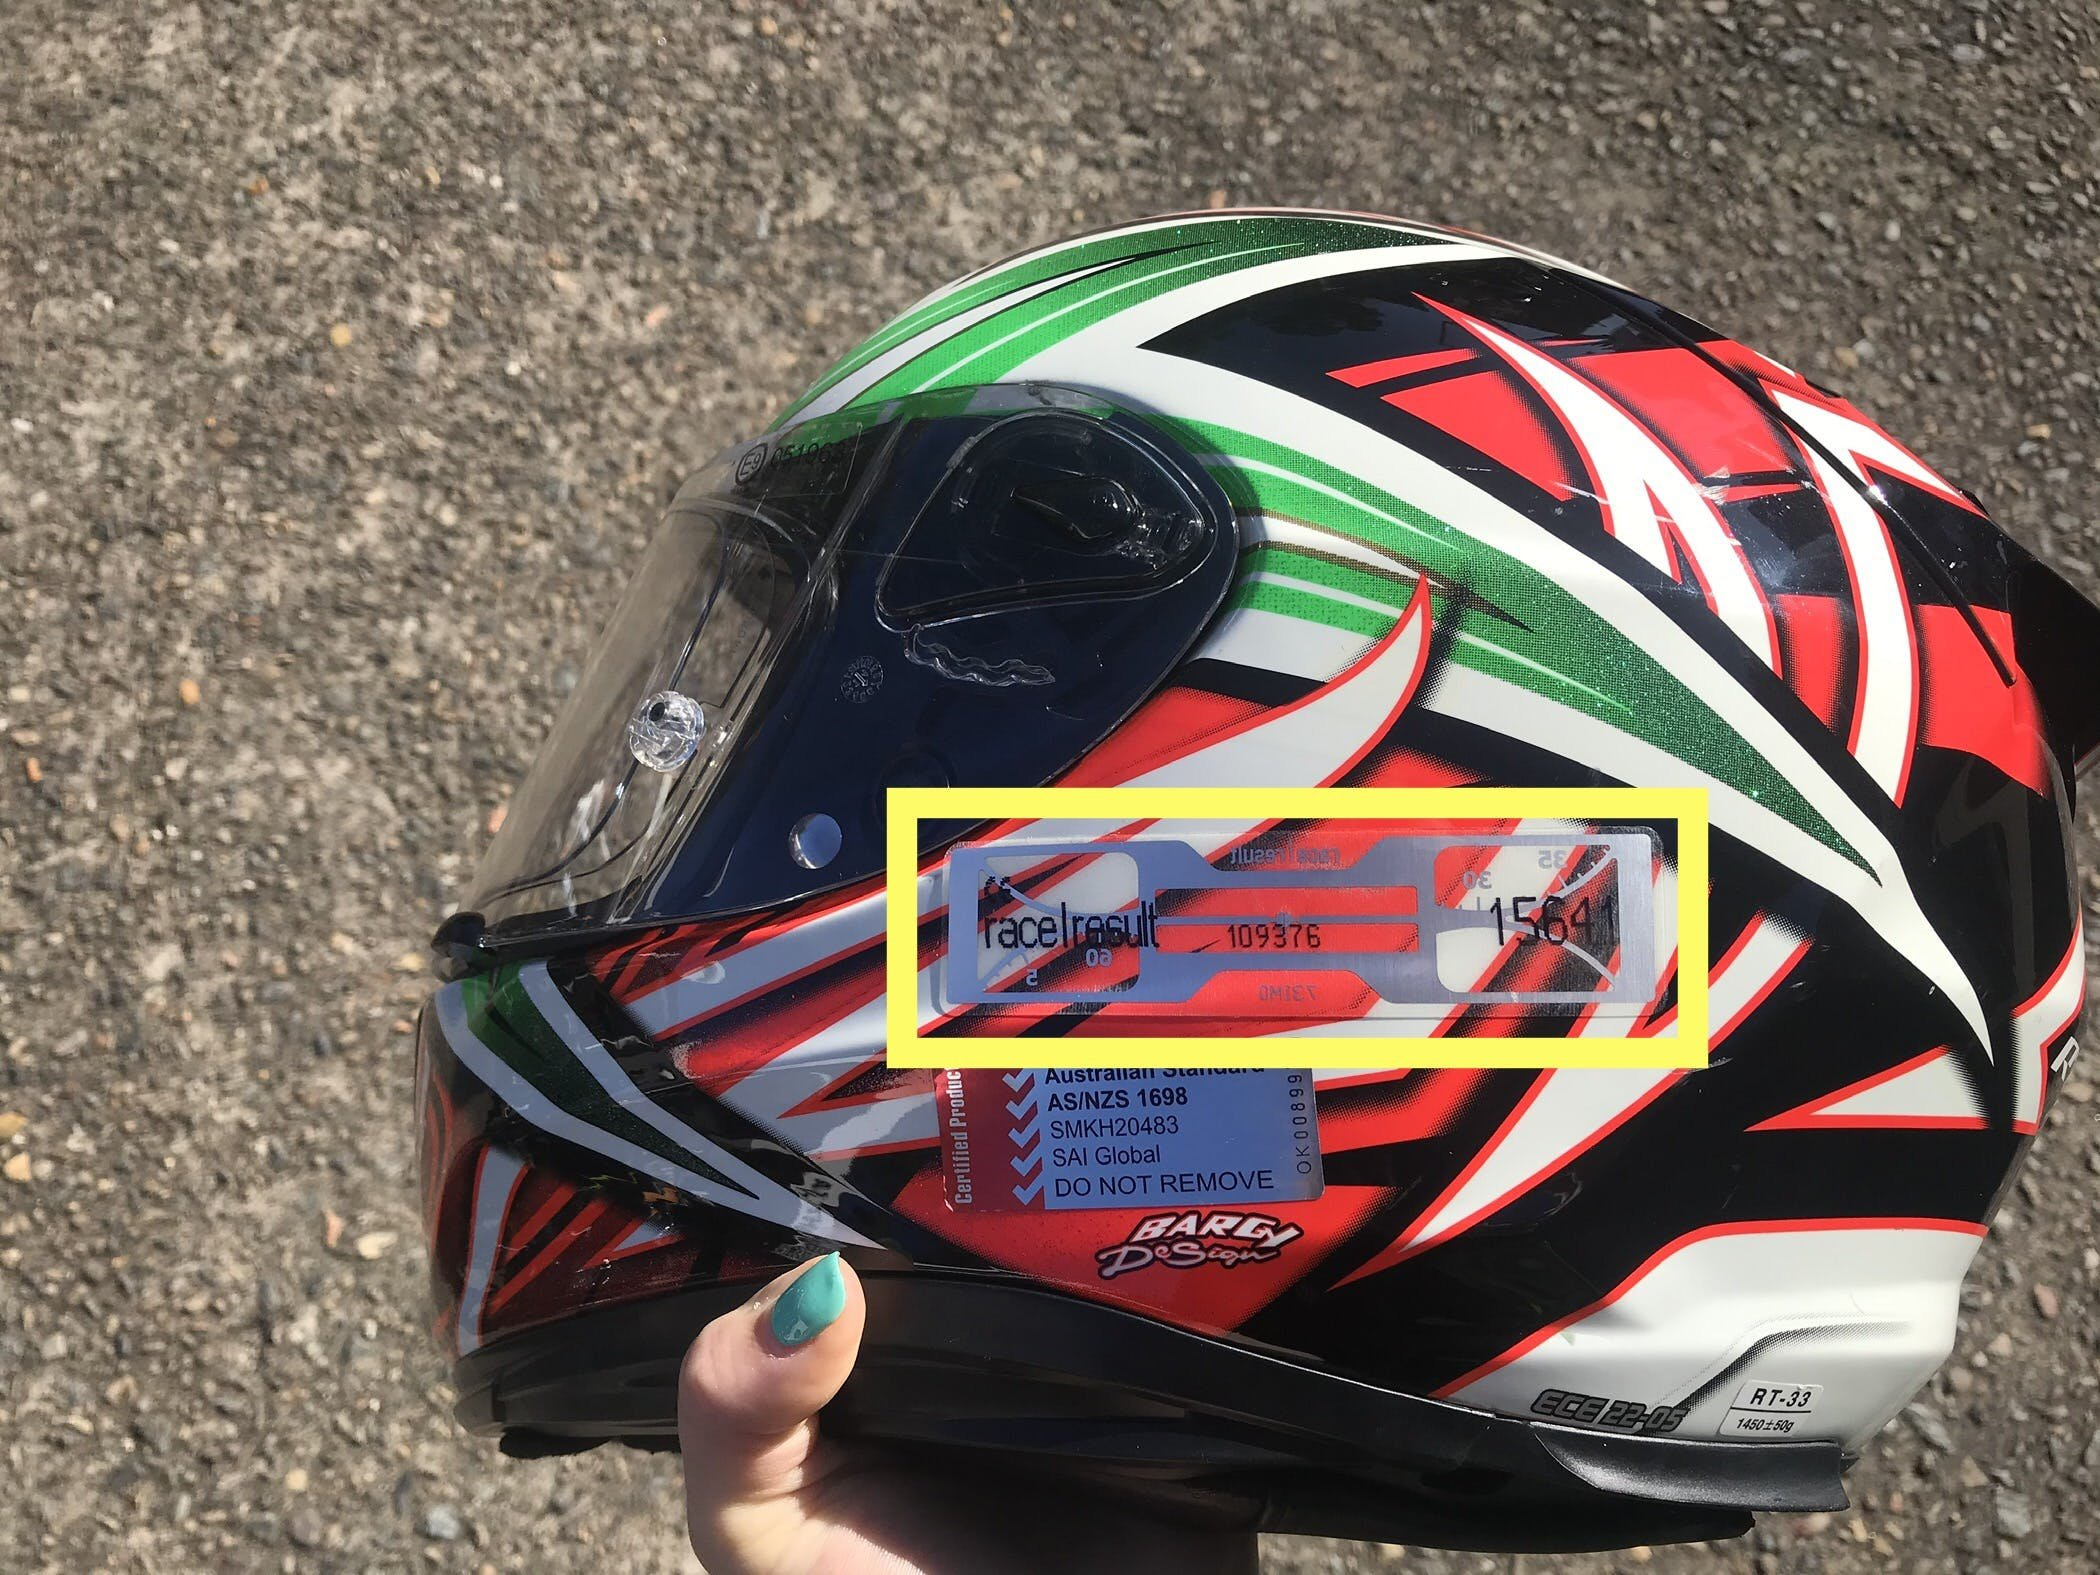 An orange and green Kabuto helmet with a SMSP time tracking sticker highlighted